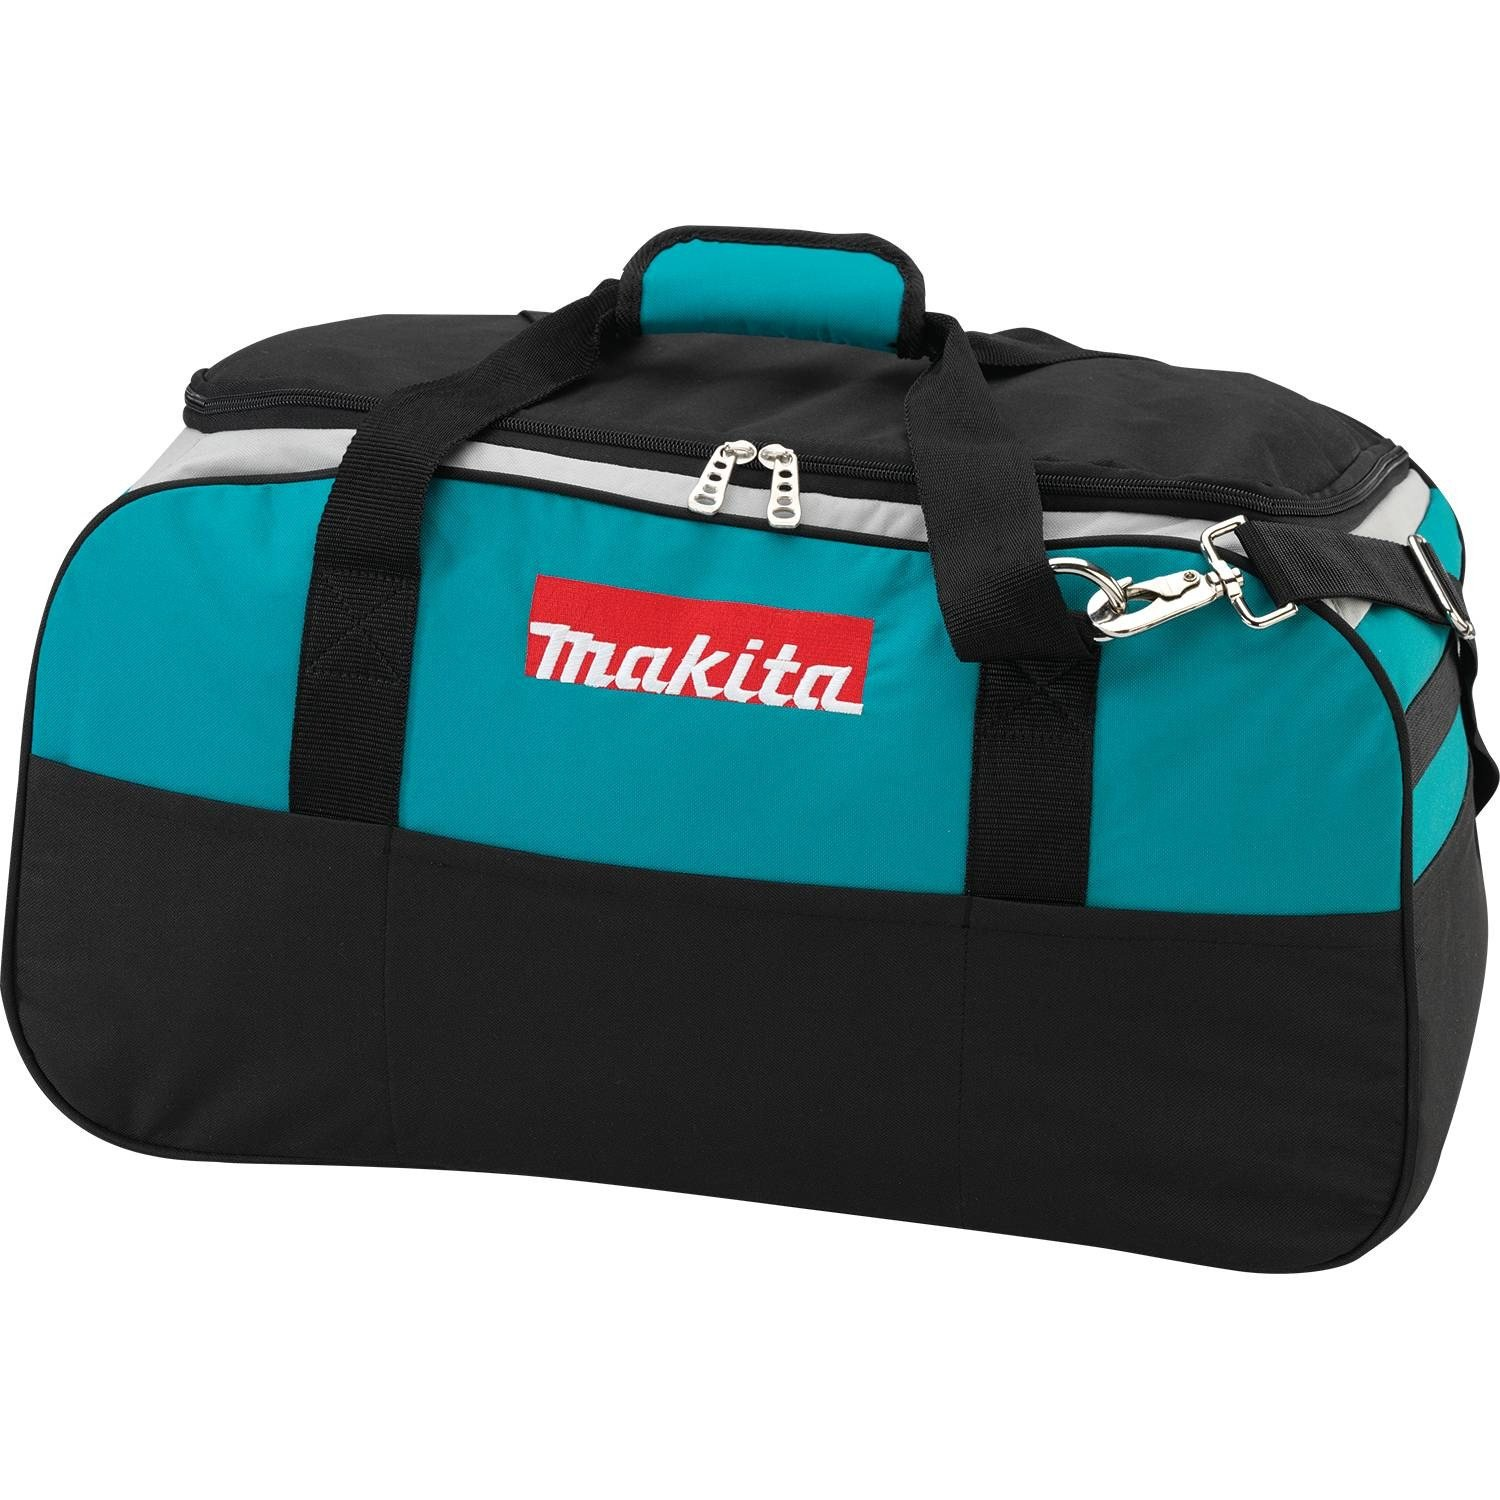 Makita 831284-7 23'' Contractor Tool Bag